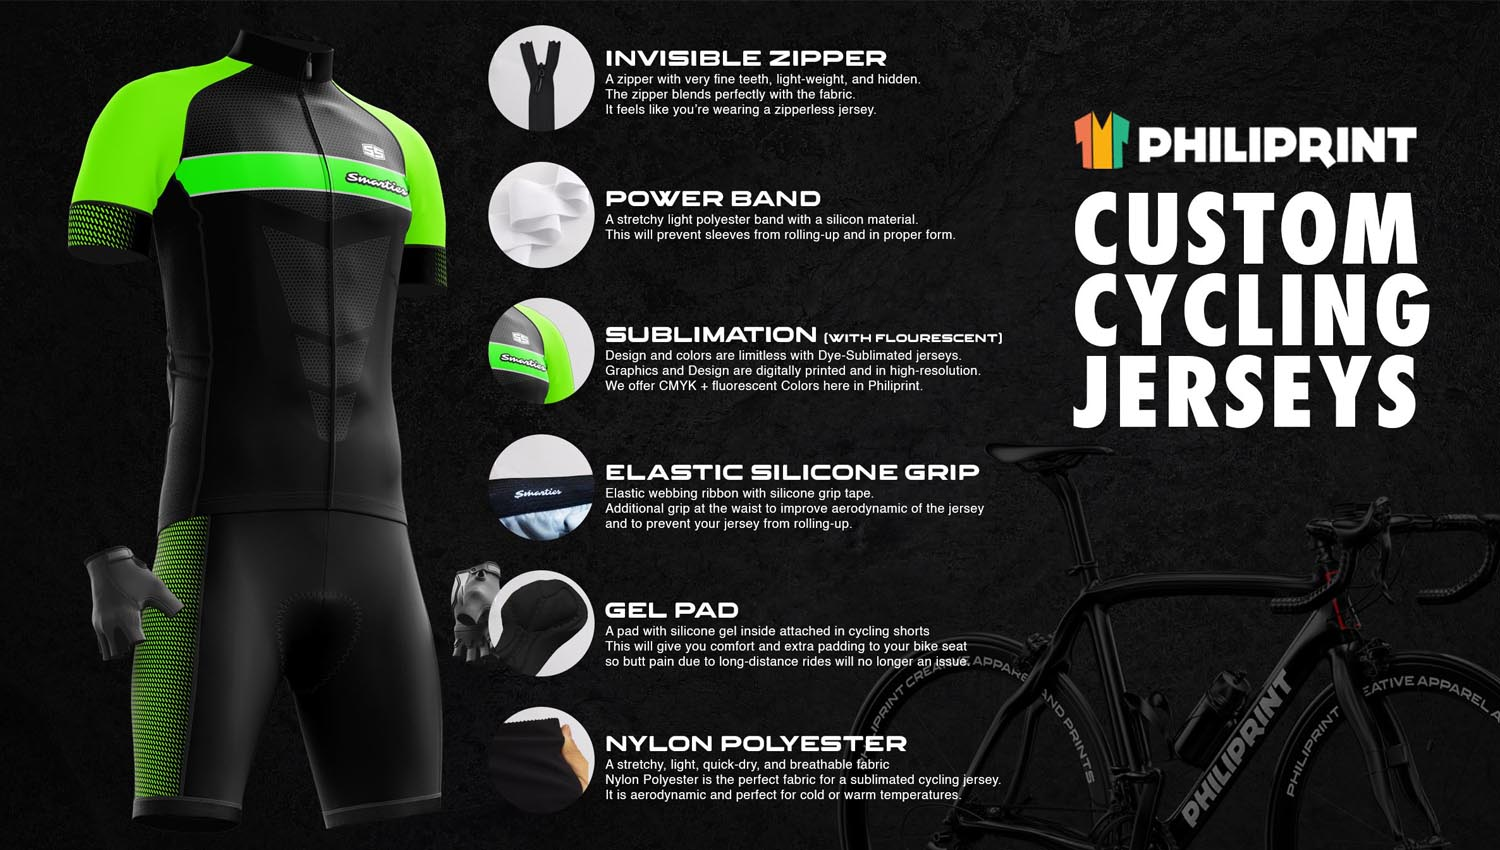 Philiprint Cycling Jersey